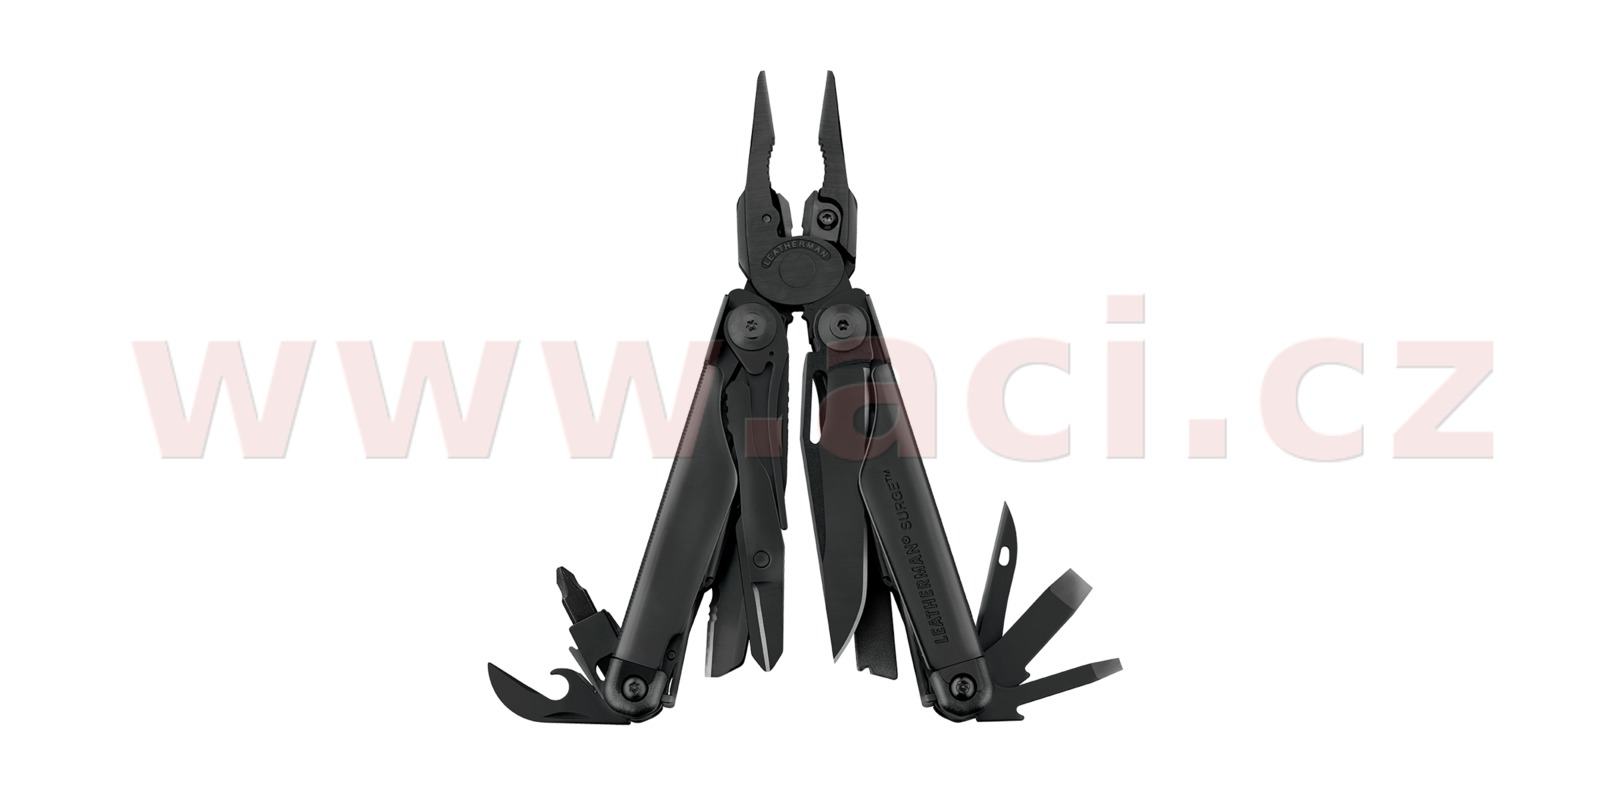 LEATHERMAN SURGE BLACK - multitool nůž